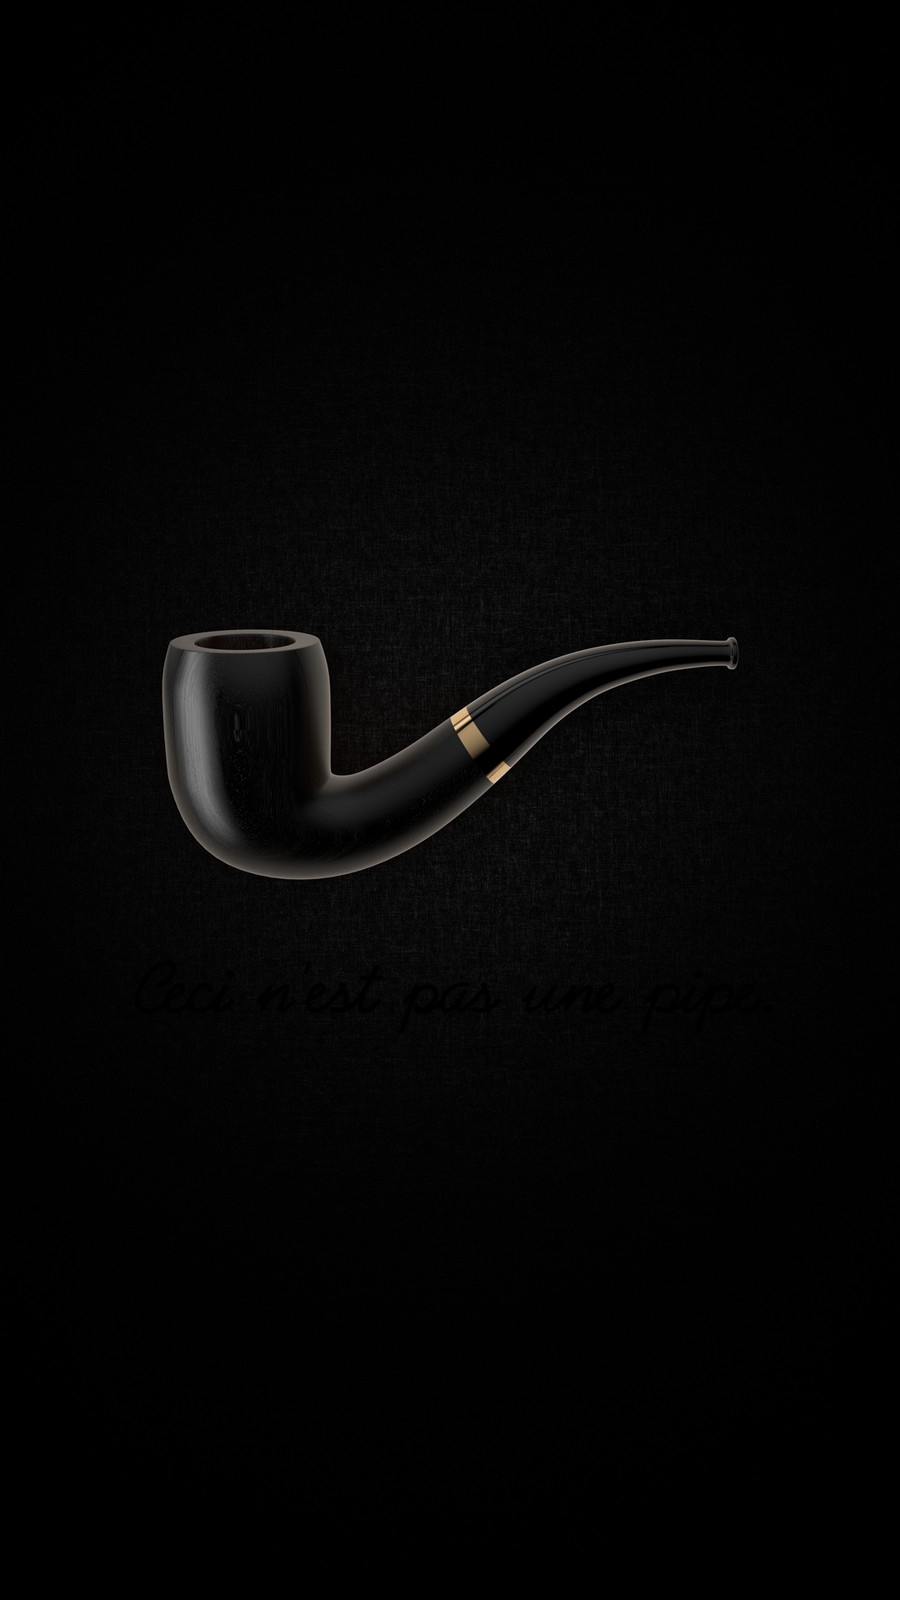 P of Pipe by hugo matilde